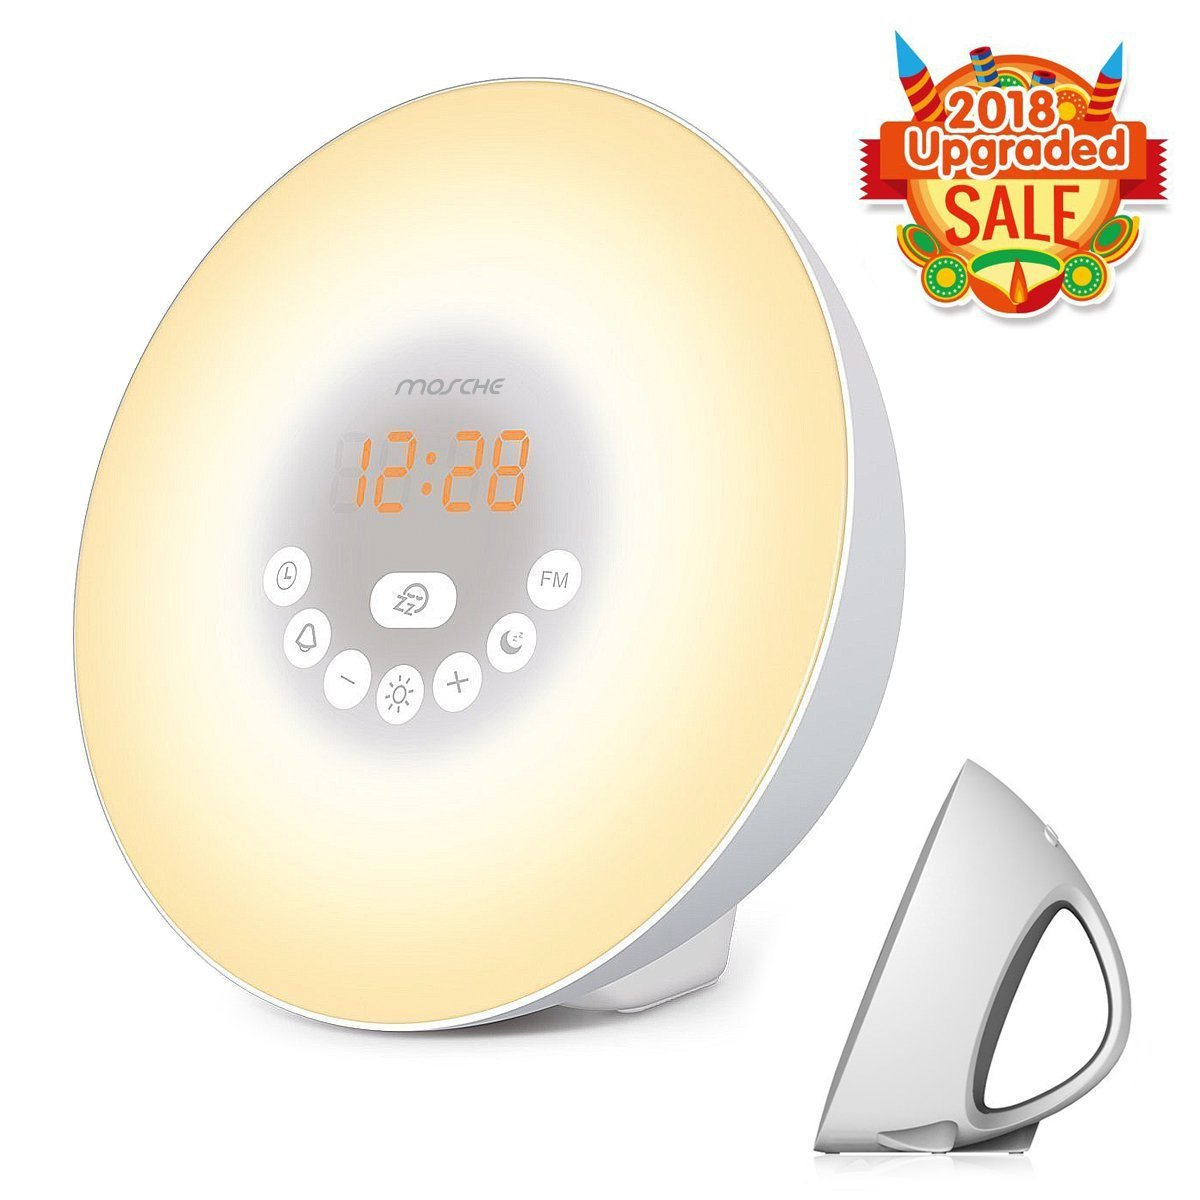 Sunrise Alarm Clock, Wake Up Light with 6 Nature Sounds, FM Radio, color Light, Bedside Sunrise Simulator (White) by MOSCHE